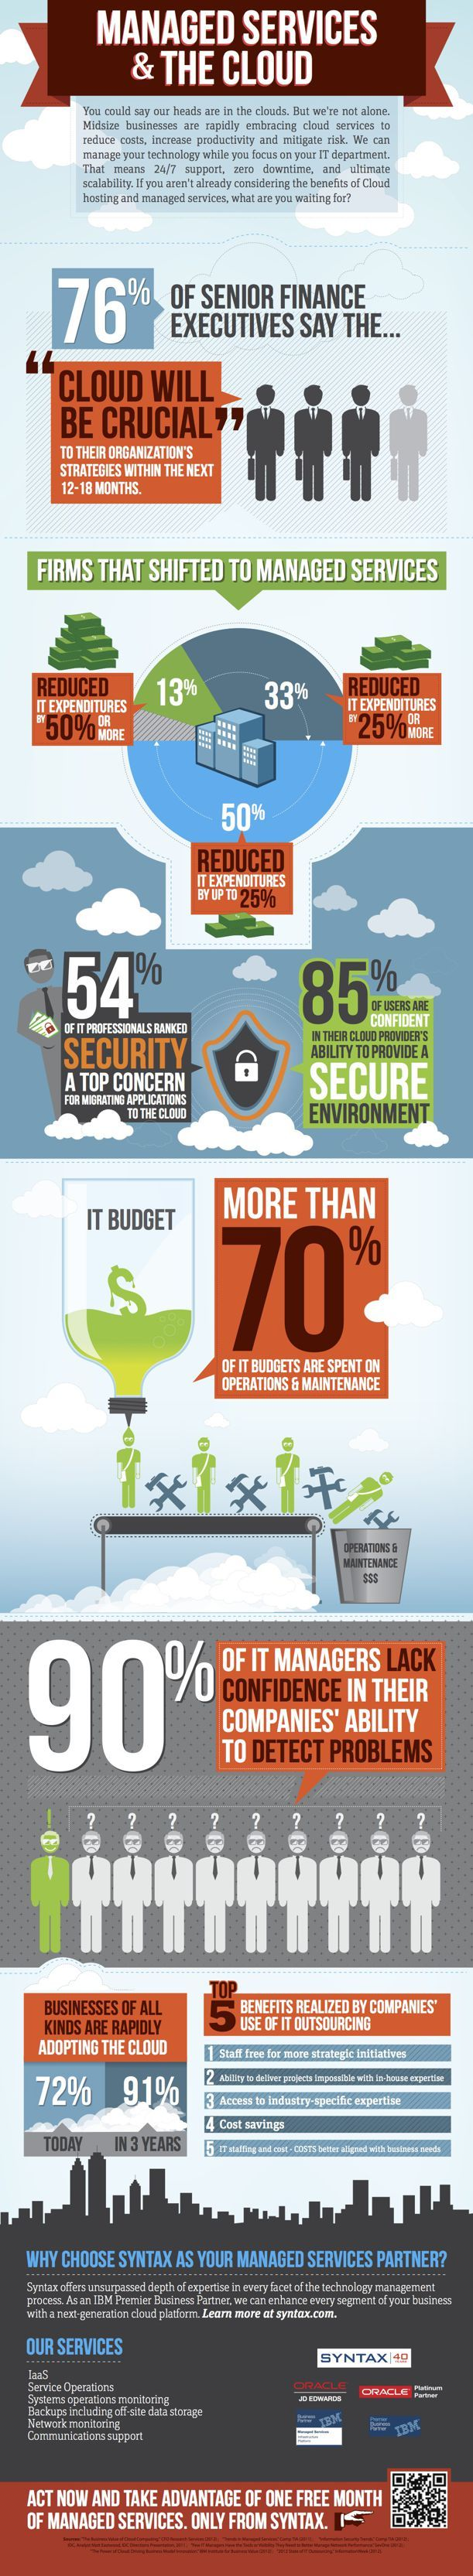 Blog post from Syntax on great managed services infographics  http://www.syntax.com/blog/index.php/great-managed-services-infographics/